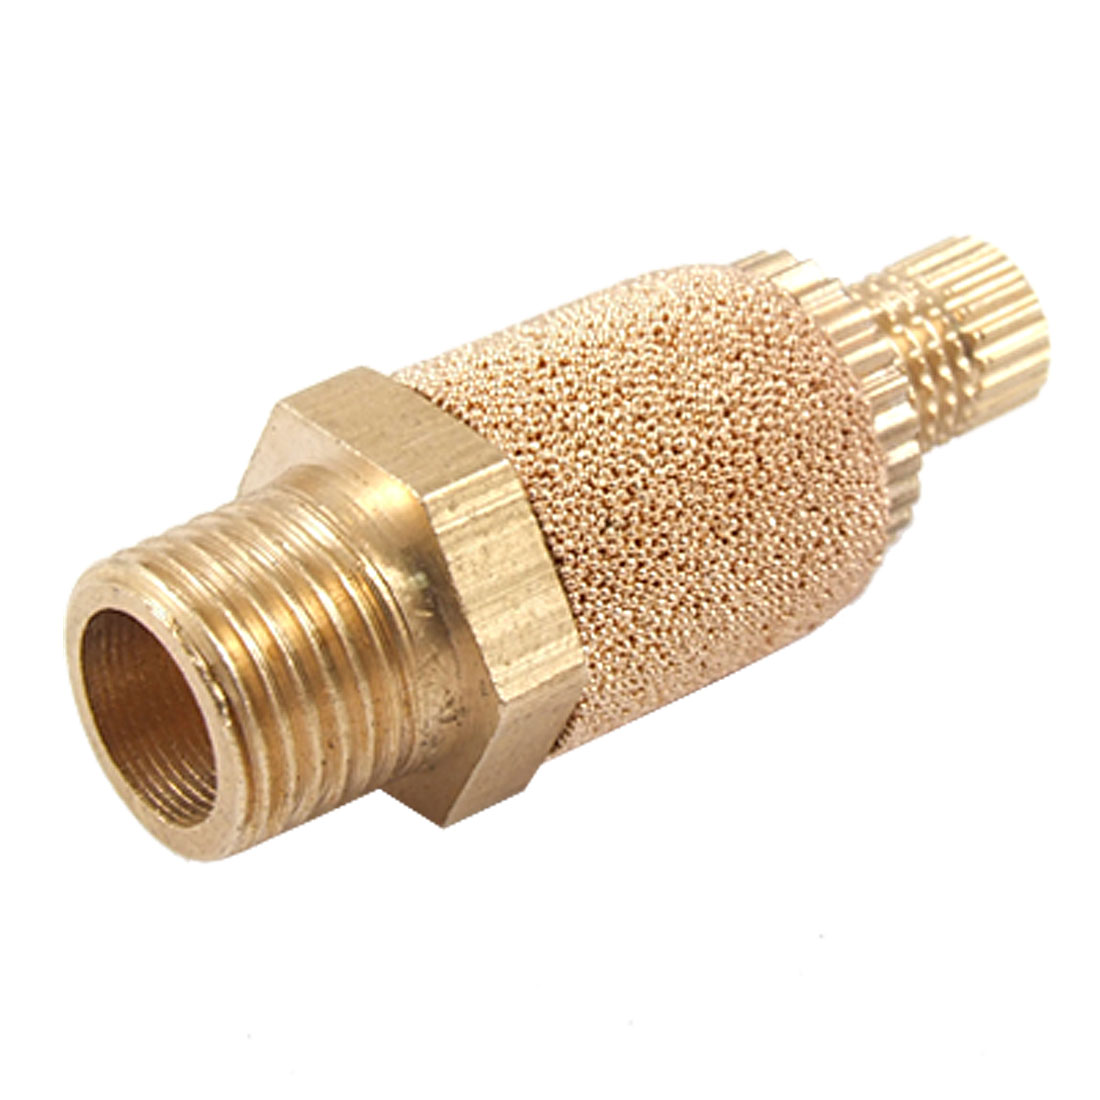 "3/8"" Male Thread Brass Adjustable Nut Muffler Silencer"